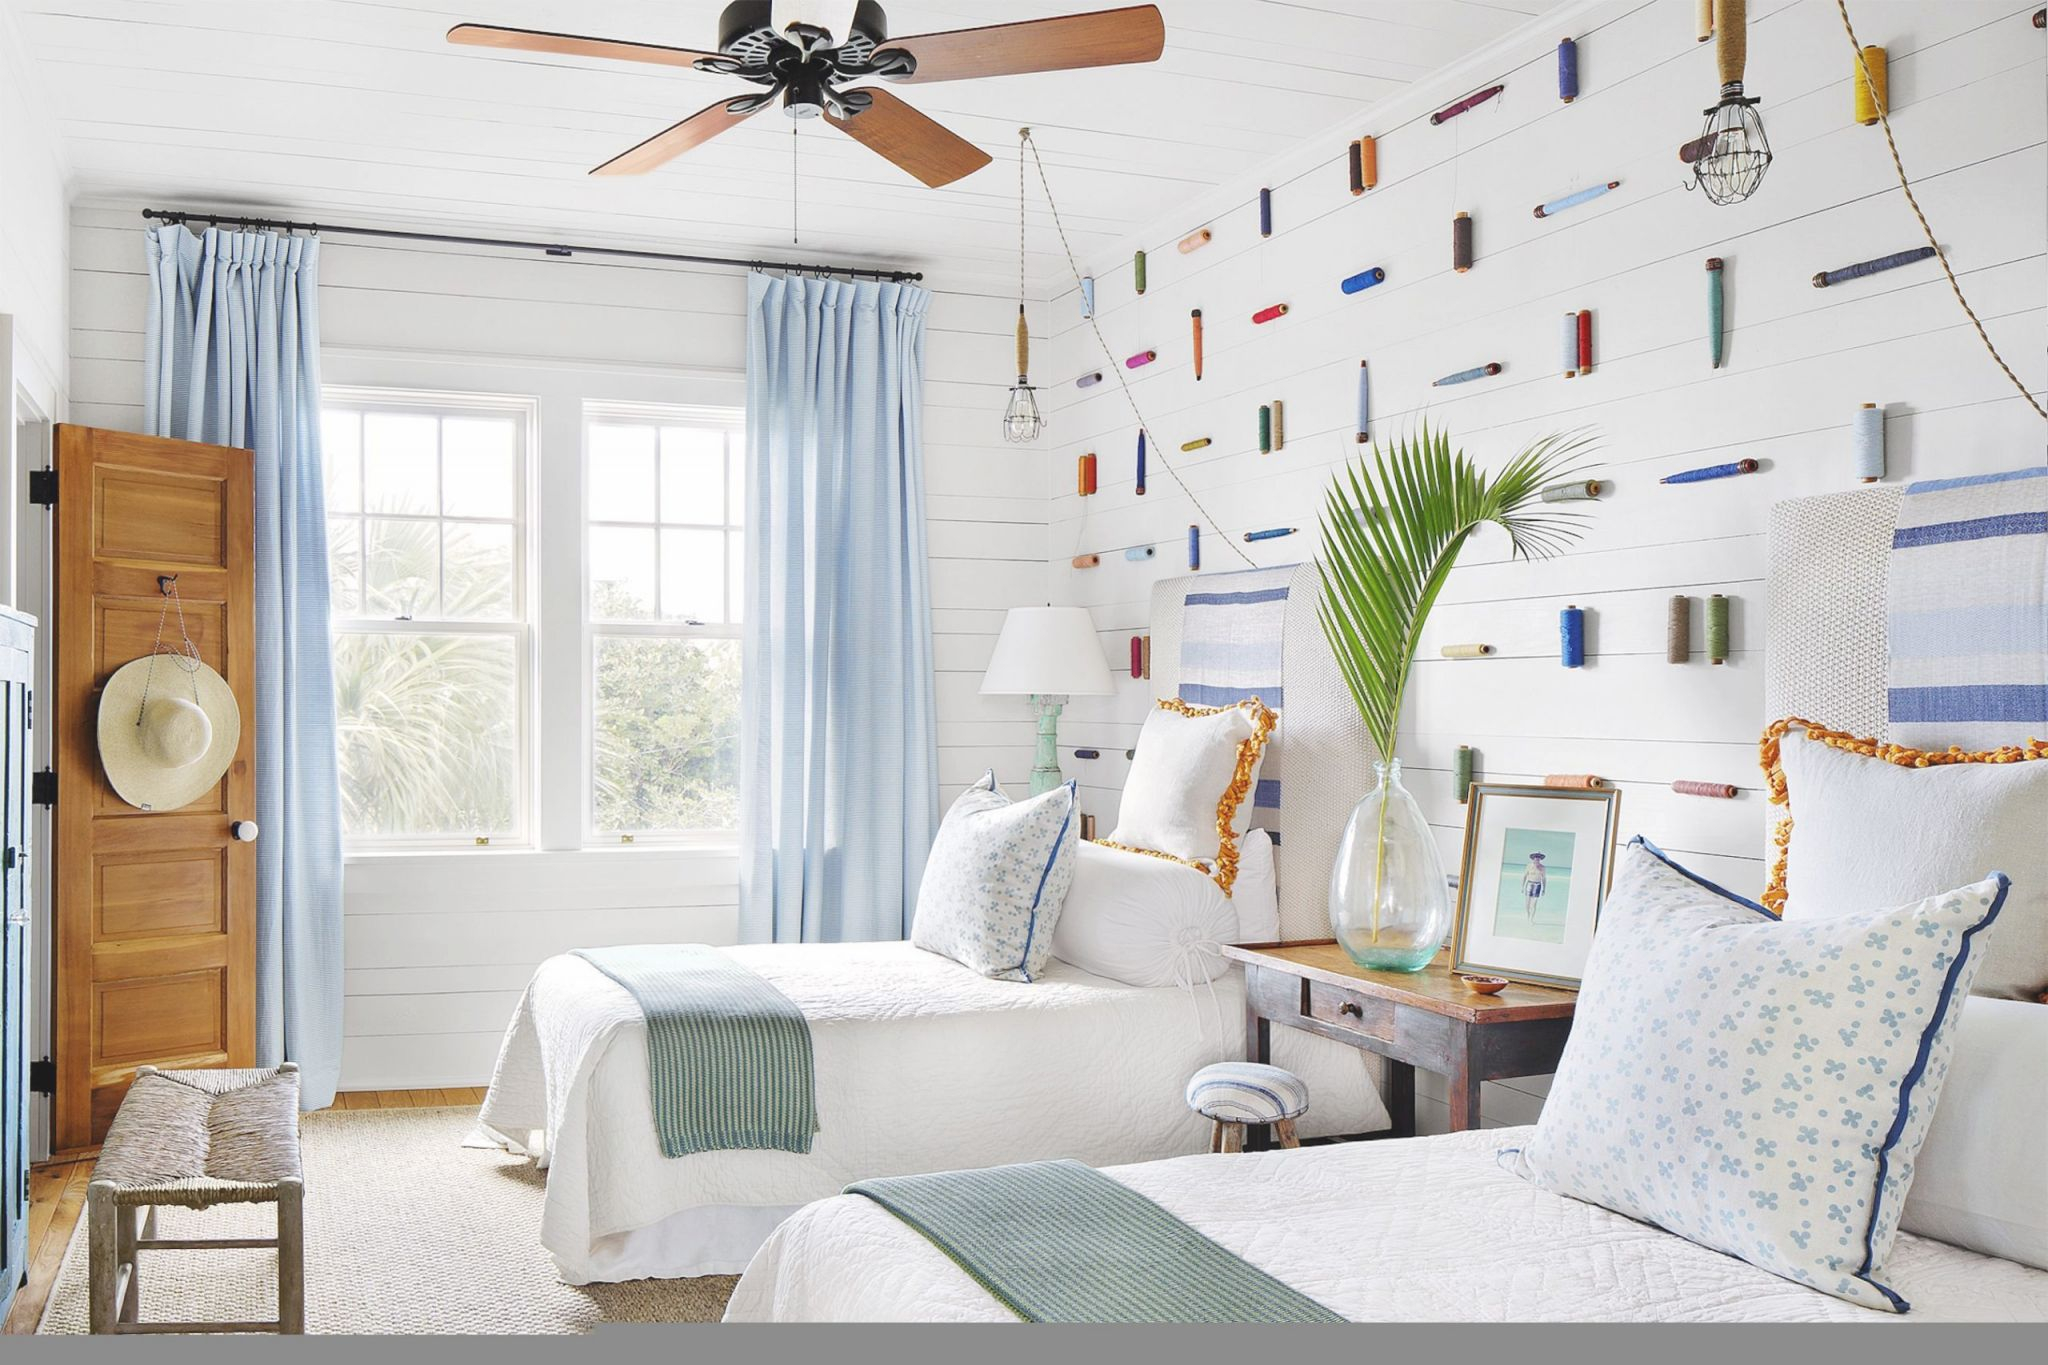 Bedroom Ideas : Beach House Decorating Home Decor Themed intended for Fresh Beach Theme Bedroom Decorating Ideas